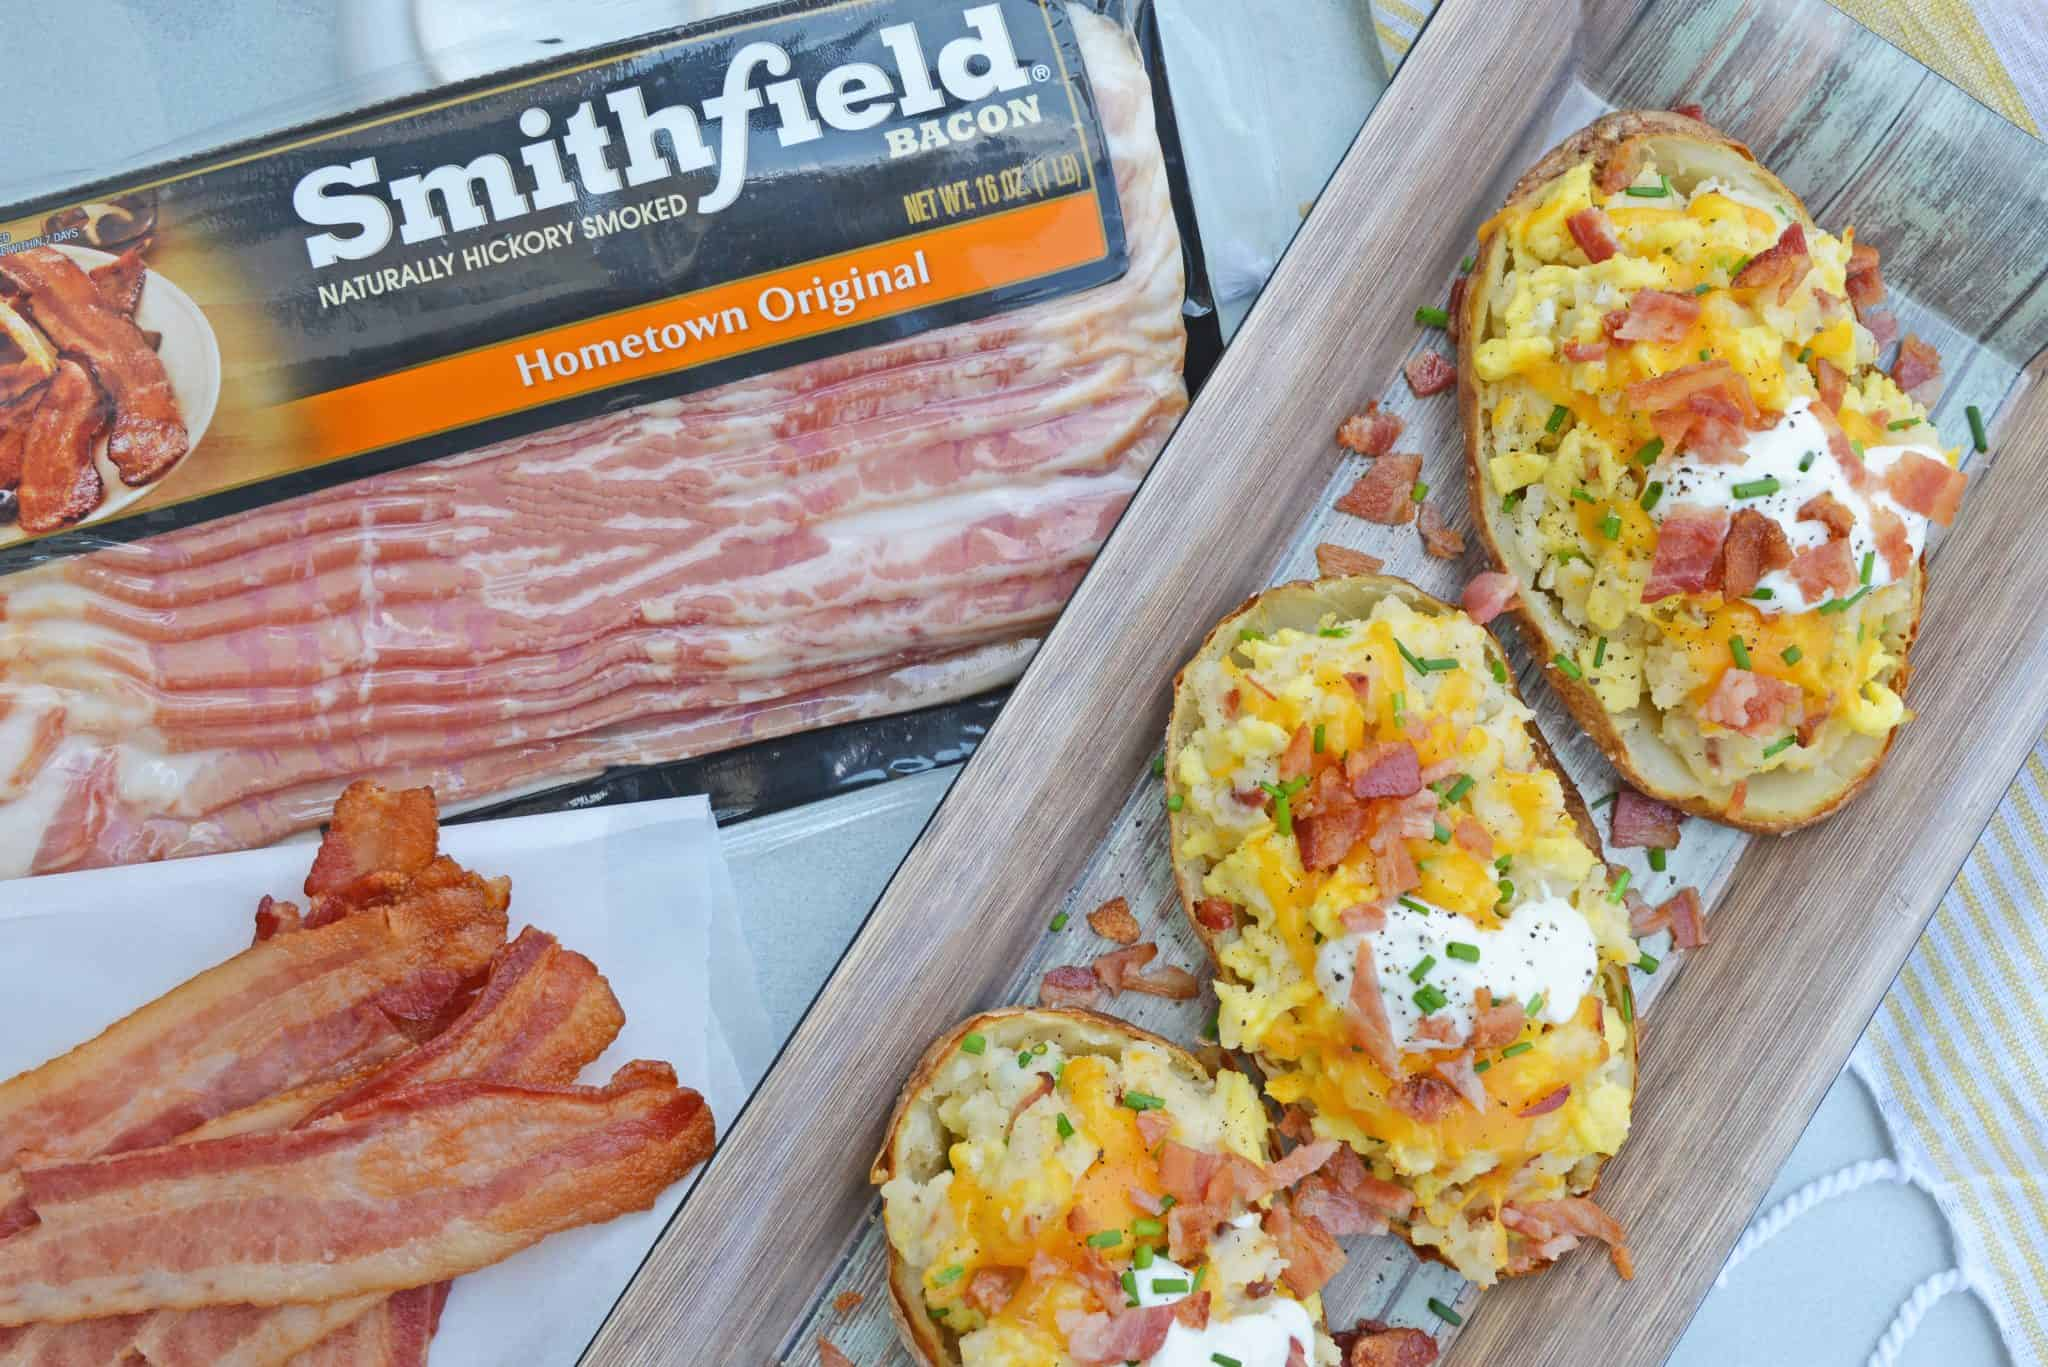 This post is sponsored by Smithfield, however all thoughts and opinions are 100% my own. Seriously? How is it already that time of the year again? It seems like we were just buying pool noodles and now we are looking for backpacks. Twice Baked Breakfast Potatoes use leftover potatoes with scrambled eggs, cheddar cheese, chives, sour cream and BACON for the perfect easy breakfast recipe. And with back to school comes the rigmarole of meal planning. Every meal of the day has its own challenges for different reasons, but one thing stands true, breakfast is the most important meal of the day! Smithfield is so passionate about the importance of breakfast, they have teamed up with No Kid Hungry for the second year in a row, doubling its donation to two million meals to support the organization's in-school breakfast programs to ensure the 1 in 6 American children struggling with hunger can have a satisfying and quality breakfast too. How can you get involved? Make a Smithfield breakfast and share a photo of it on Facebook, Instagram and Twitter using #BreakfastPower and for every post shared, Smithfield will donate enough for 10 meals to No Kid Hungry. Learn more HERE! Studies show that when students have a hearty and wholesome breakfast in the morning, they are more likely to attend school and perform better on standardized tests making breakfast a powerful learning tool. In fact, when students don't get the food they need, 76% of teachers see poor academic performance and 80% see the students lose the ability to concentrate (source: No Kid Hungry). Quality of breakfast is just as important as having breakfast, but with a little bit of planning, you can be serving your little ones (or big ones!) a protein-packed breakfast that will fuel them through the morning. My favorite: Twice Baked Breakfast Potatoes! This is my favorite for several reasons. First, I can use leftover baked potatoes to make breakfast. I hate wasting food and also hate eating the same thing, so I can make two meals with the same set of baked potatoes. The second is how easy they are to make and how they can be prepared ahead of time. I go ahead and assemble the whole stuffed potato and then just pop it in the oven for a few minutes to warm them up! Smithfield Hometown Original Bacon provides the protein boost you need as well as scrambled eggs and cheddar cheese, while potatoes give complex carbohydrates and dietary fiber. Smithfield Hometown Original Bacon is smoked and cured and comes in different flavors and cuts like Cherrywood and Thick Cut so you can customize your Twice Baked Breakfast Potatoes. And since bacon makes everything better, I usually make a few extra crispy strips to serve on the side of my potato. If you liked our Twice Baked Breakfast Potato, you'll love these other breakfast recipes that use bacon too! • Bacon, Egg and Cheese Breakfast Bread • Creamy Cheddar Grits • Stuffed Breakfast Potatoes So really the only question left is do you like your breakfast potatoes and eggs with ketchup, hot sauce or plain? Personally, I like mine plain so I can really taste ALL the flavors! {RECIPE CARD} Potatoes: 2 large russet potatoes, cooked* 2 tablespoons butter, divided 3 eggs, lightly beaten ½ cup Smithfield Hometown Original Bacon, cooked and crumbled 2 tablespoons sour cream ¼ cup cheddar cheese, shredded 1 tablespoon chives, minced ¼ teaspoon garlic powder ¼ teaspoon ground black pepper Toppings: Smithfield Bacon Hometown Original Chives Sour Cream Sea Salt Hot Sauce Ketchup Preheat oven to 350 degrees. In a small skillet, melt 1 tablespoon butter. Add lightly beaten eggs, stirring until scrambled and just cooked. Do not overcook. Set aside. Cut large, cooked potatoes in half lengthwise. Using a spoon, hallow out skins. Place potato pulp in a medium mixing bowl. Place potato skins on a baking sheet. Mash potato pulp with sour cream and 1 tablespoon butter. Stir in shredded cheddar cheese, chives, garlic powder and ground black pepper, mix well. Using two forks, toss scrambled eggs with potato mixture. Do not over mix, just lightly toss. Fill potato skins, mixture will be heaping. Place back into oven for 10 minutes, or until hot all the way through. Immediately top with additional cheddar cheese, crumbled bacon, chives and any additional condiments you desire. If you've given our Twice Baked Breakfast Potatoes a try, make sure to come back through and let us know how they were! *Use leftover baked potatoes or pierce your potato several times and microwave for 4-5 minutes. The size of potato and power of your microwave will make cooking time vary greatly, please keep an eye out while it cooks! *Hot potatoes tend to work better. If you are using leftovers, scoop out the potato and heat in the microwave before mashing. {END RECIPE CARD} You can find your own Smithfield Bacon at your local retailer or grocery store!